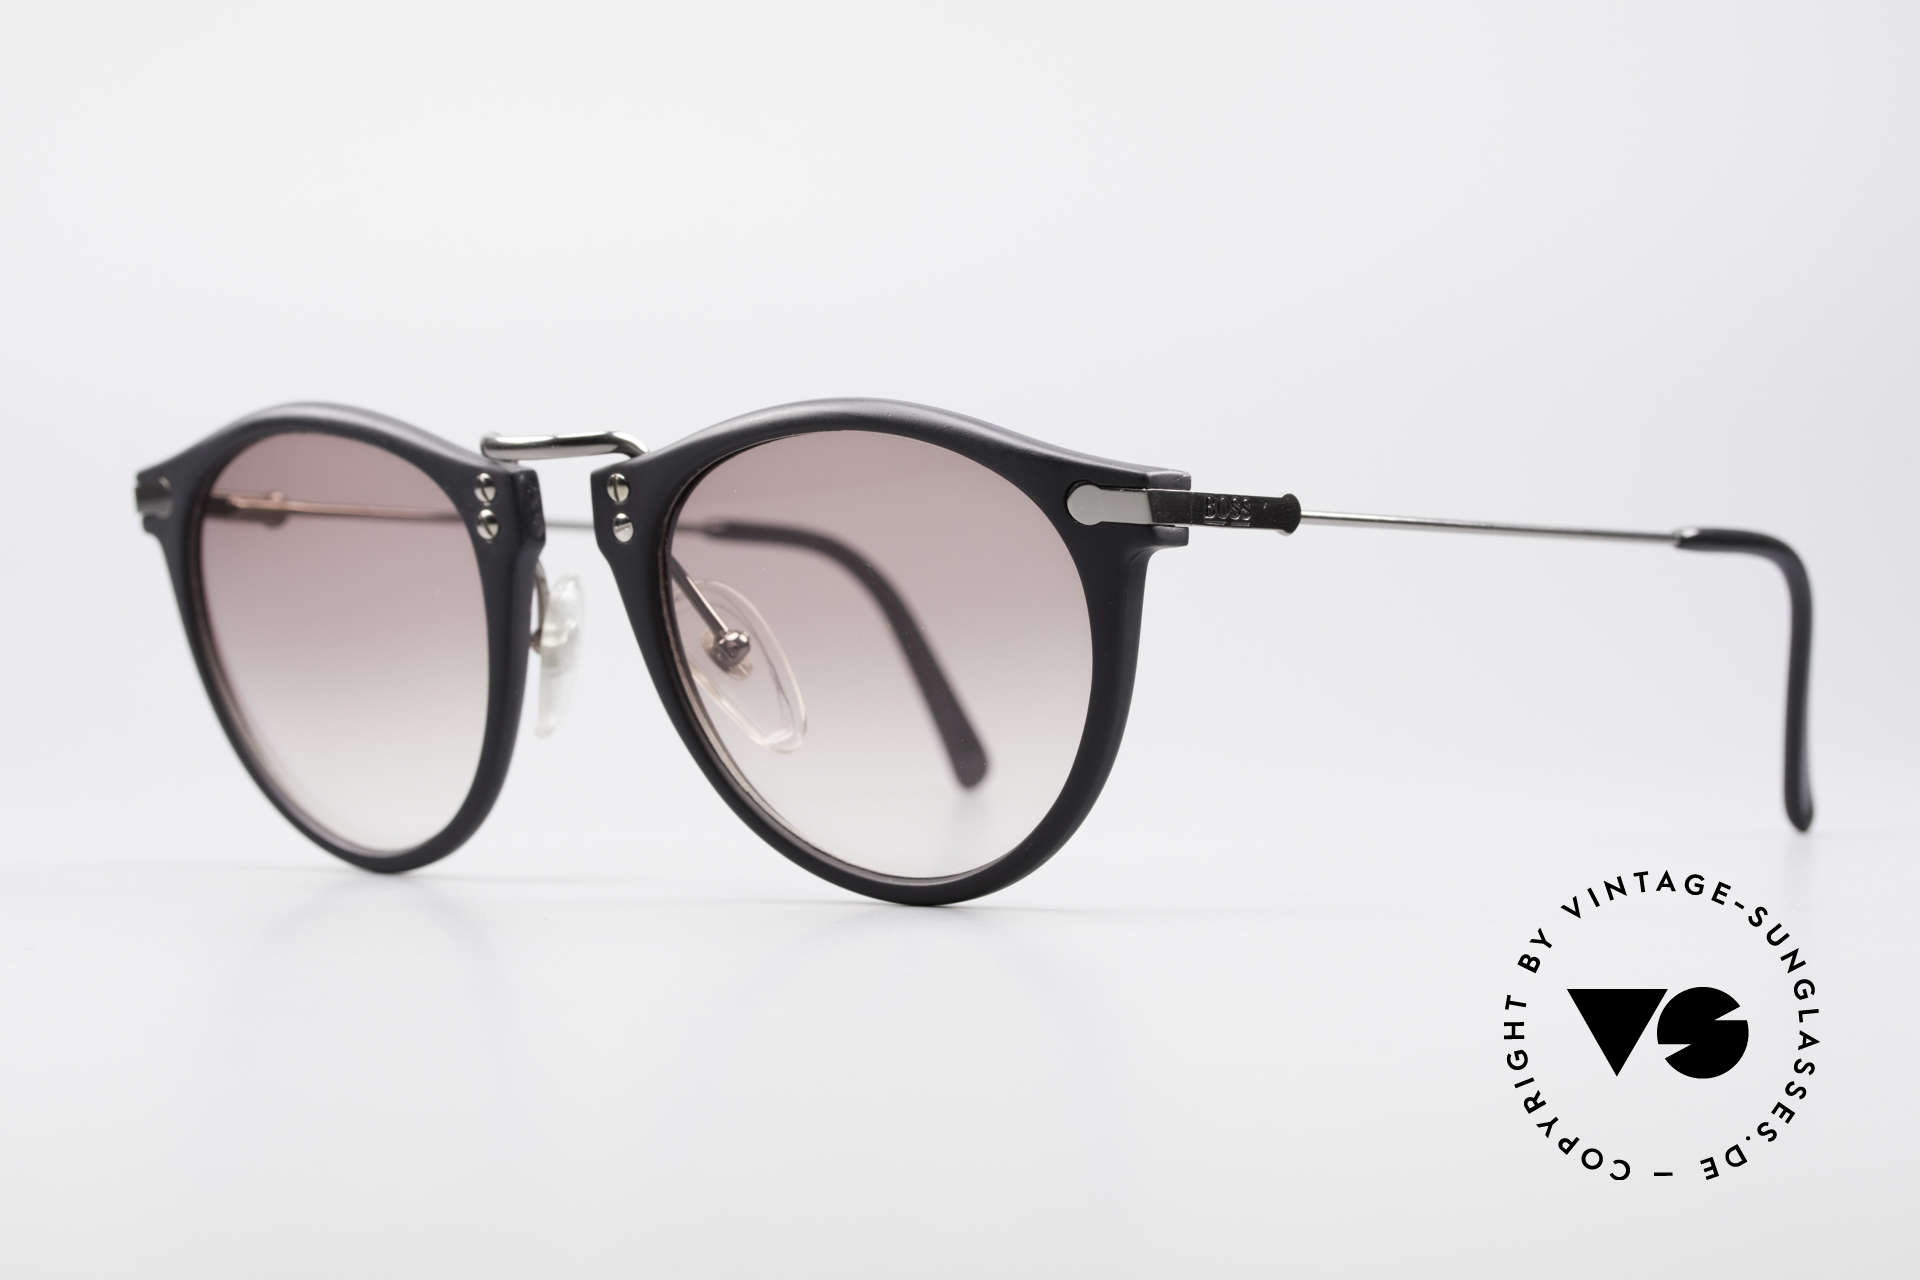 BOSS 5152 - L Panto Style Sunglasses Large, cooperation between BOSS & Carrera, at that time, Made for Men